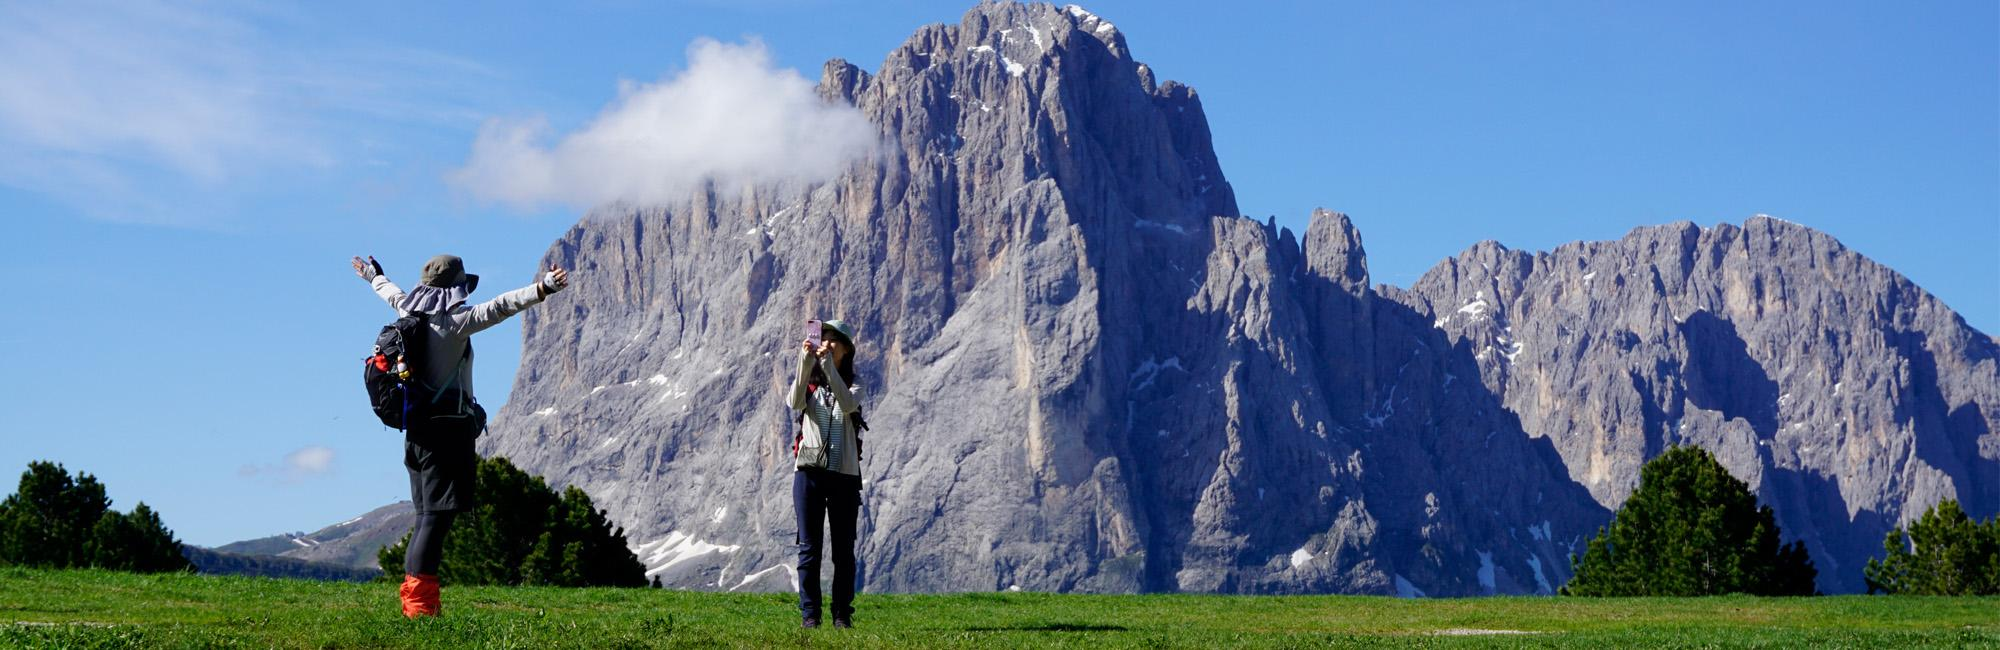 Hiker in Dolomites